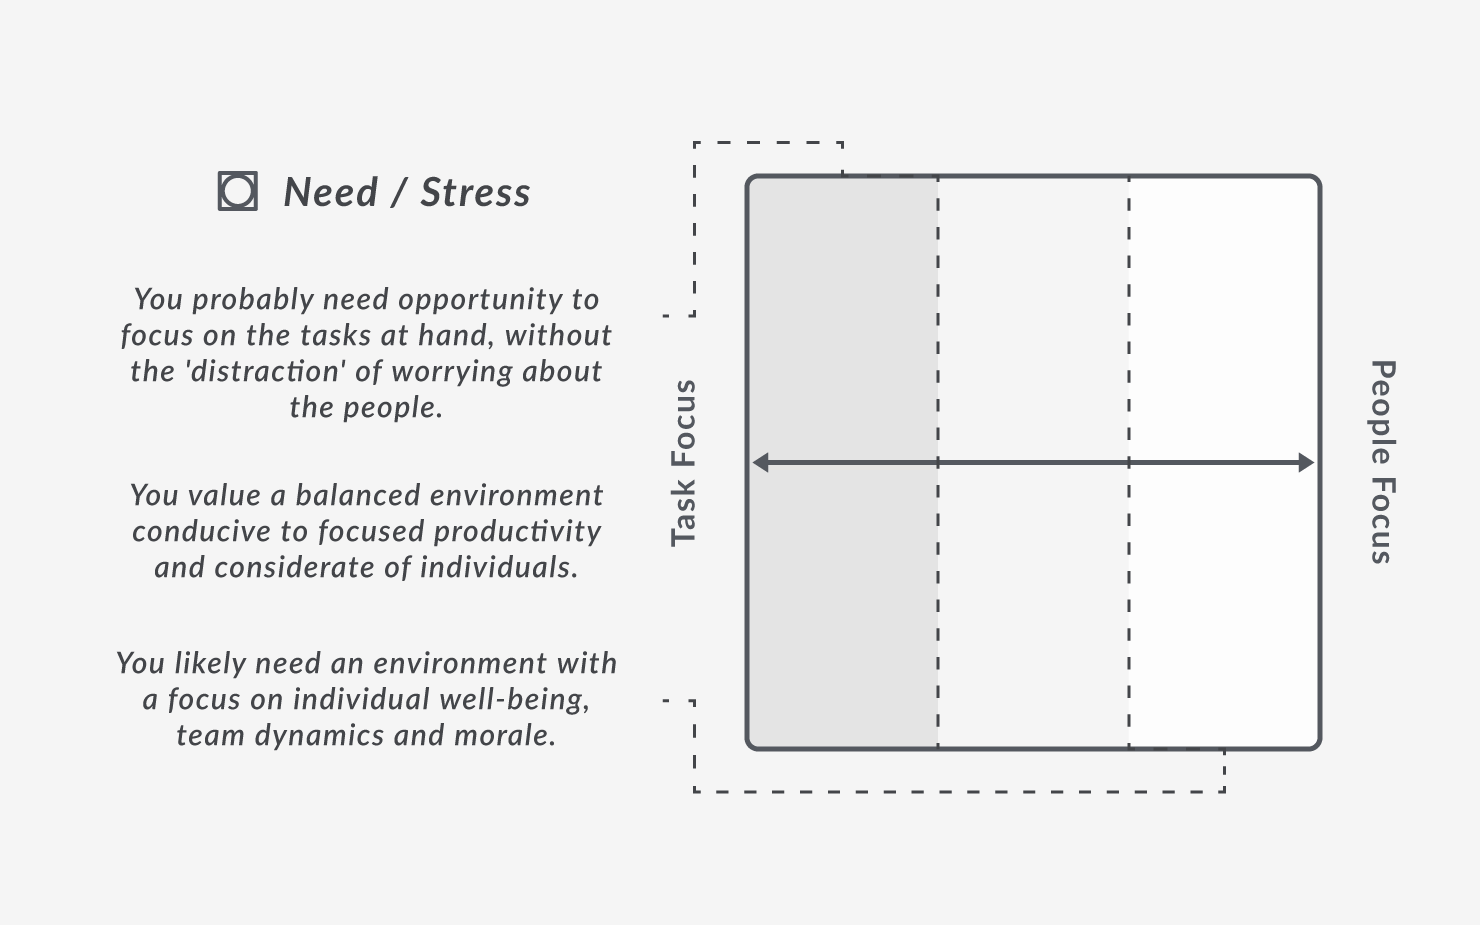 Horizontal Axis: Need & Stress